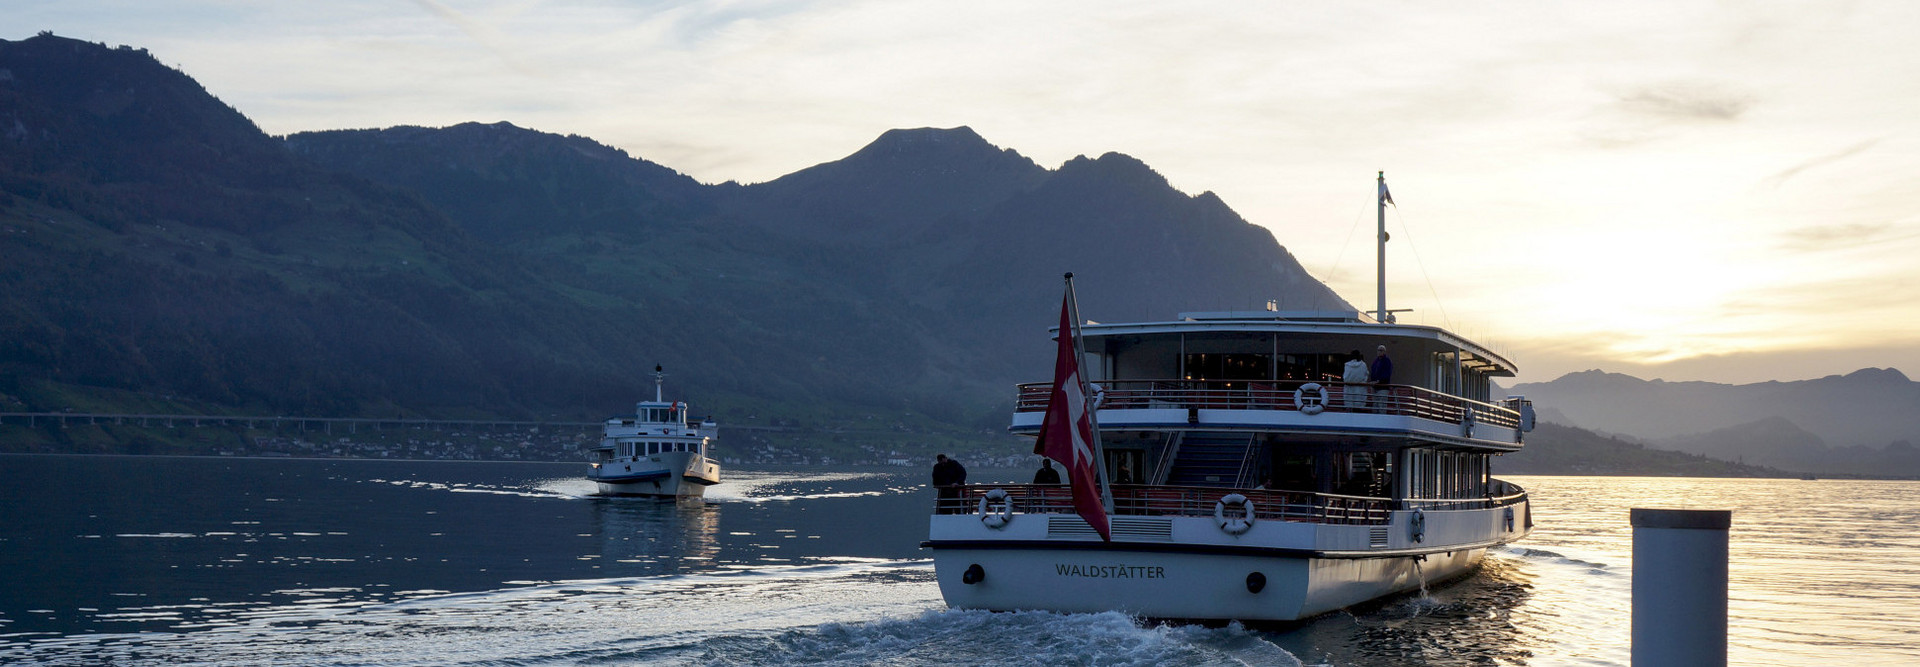 Two motor ships of the Lake Lucerne Navigation Company cross each other on Lake Lucerne one morning.